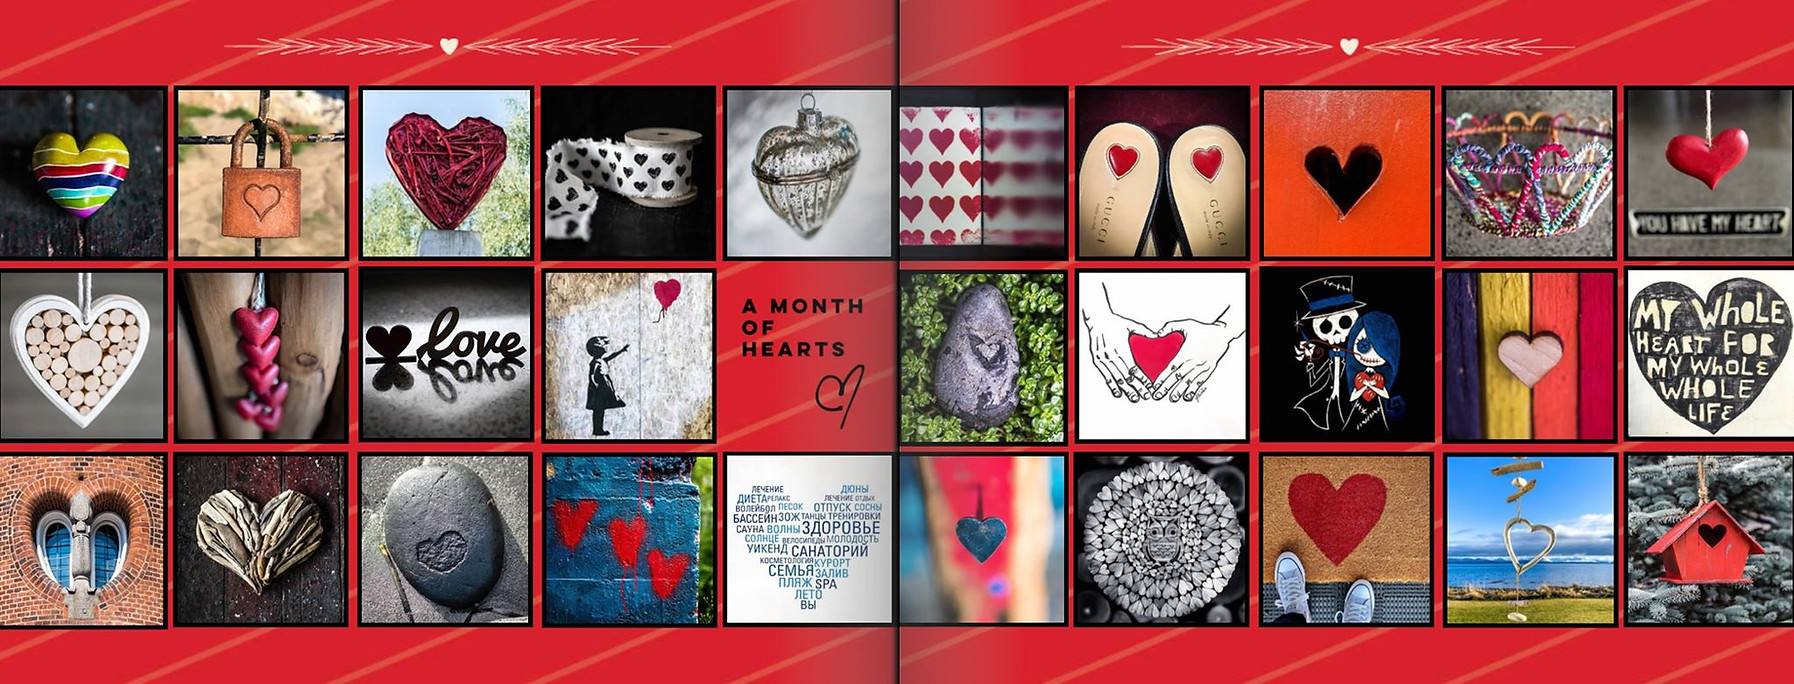 HeART Collage by Kim Windle